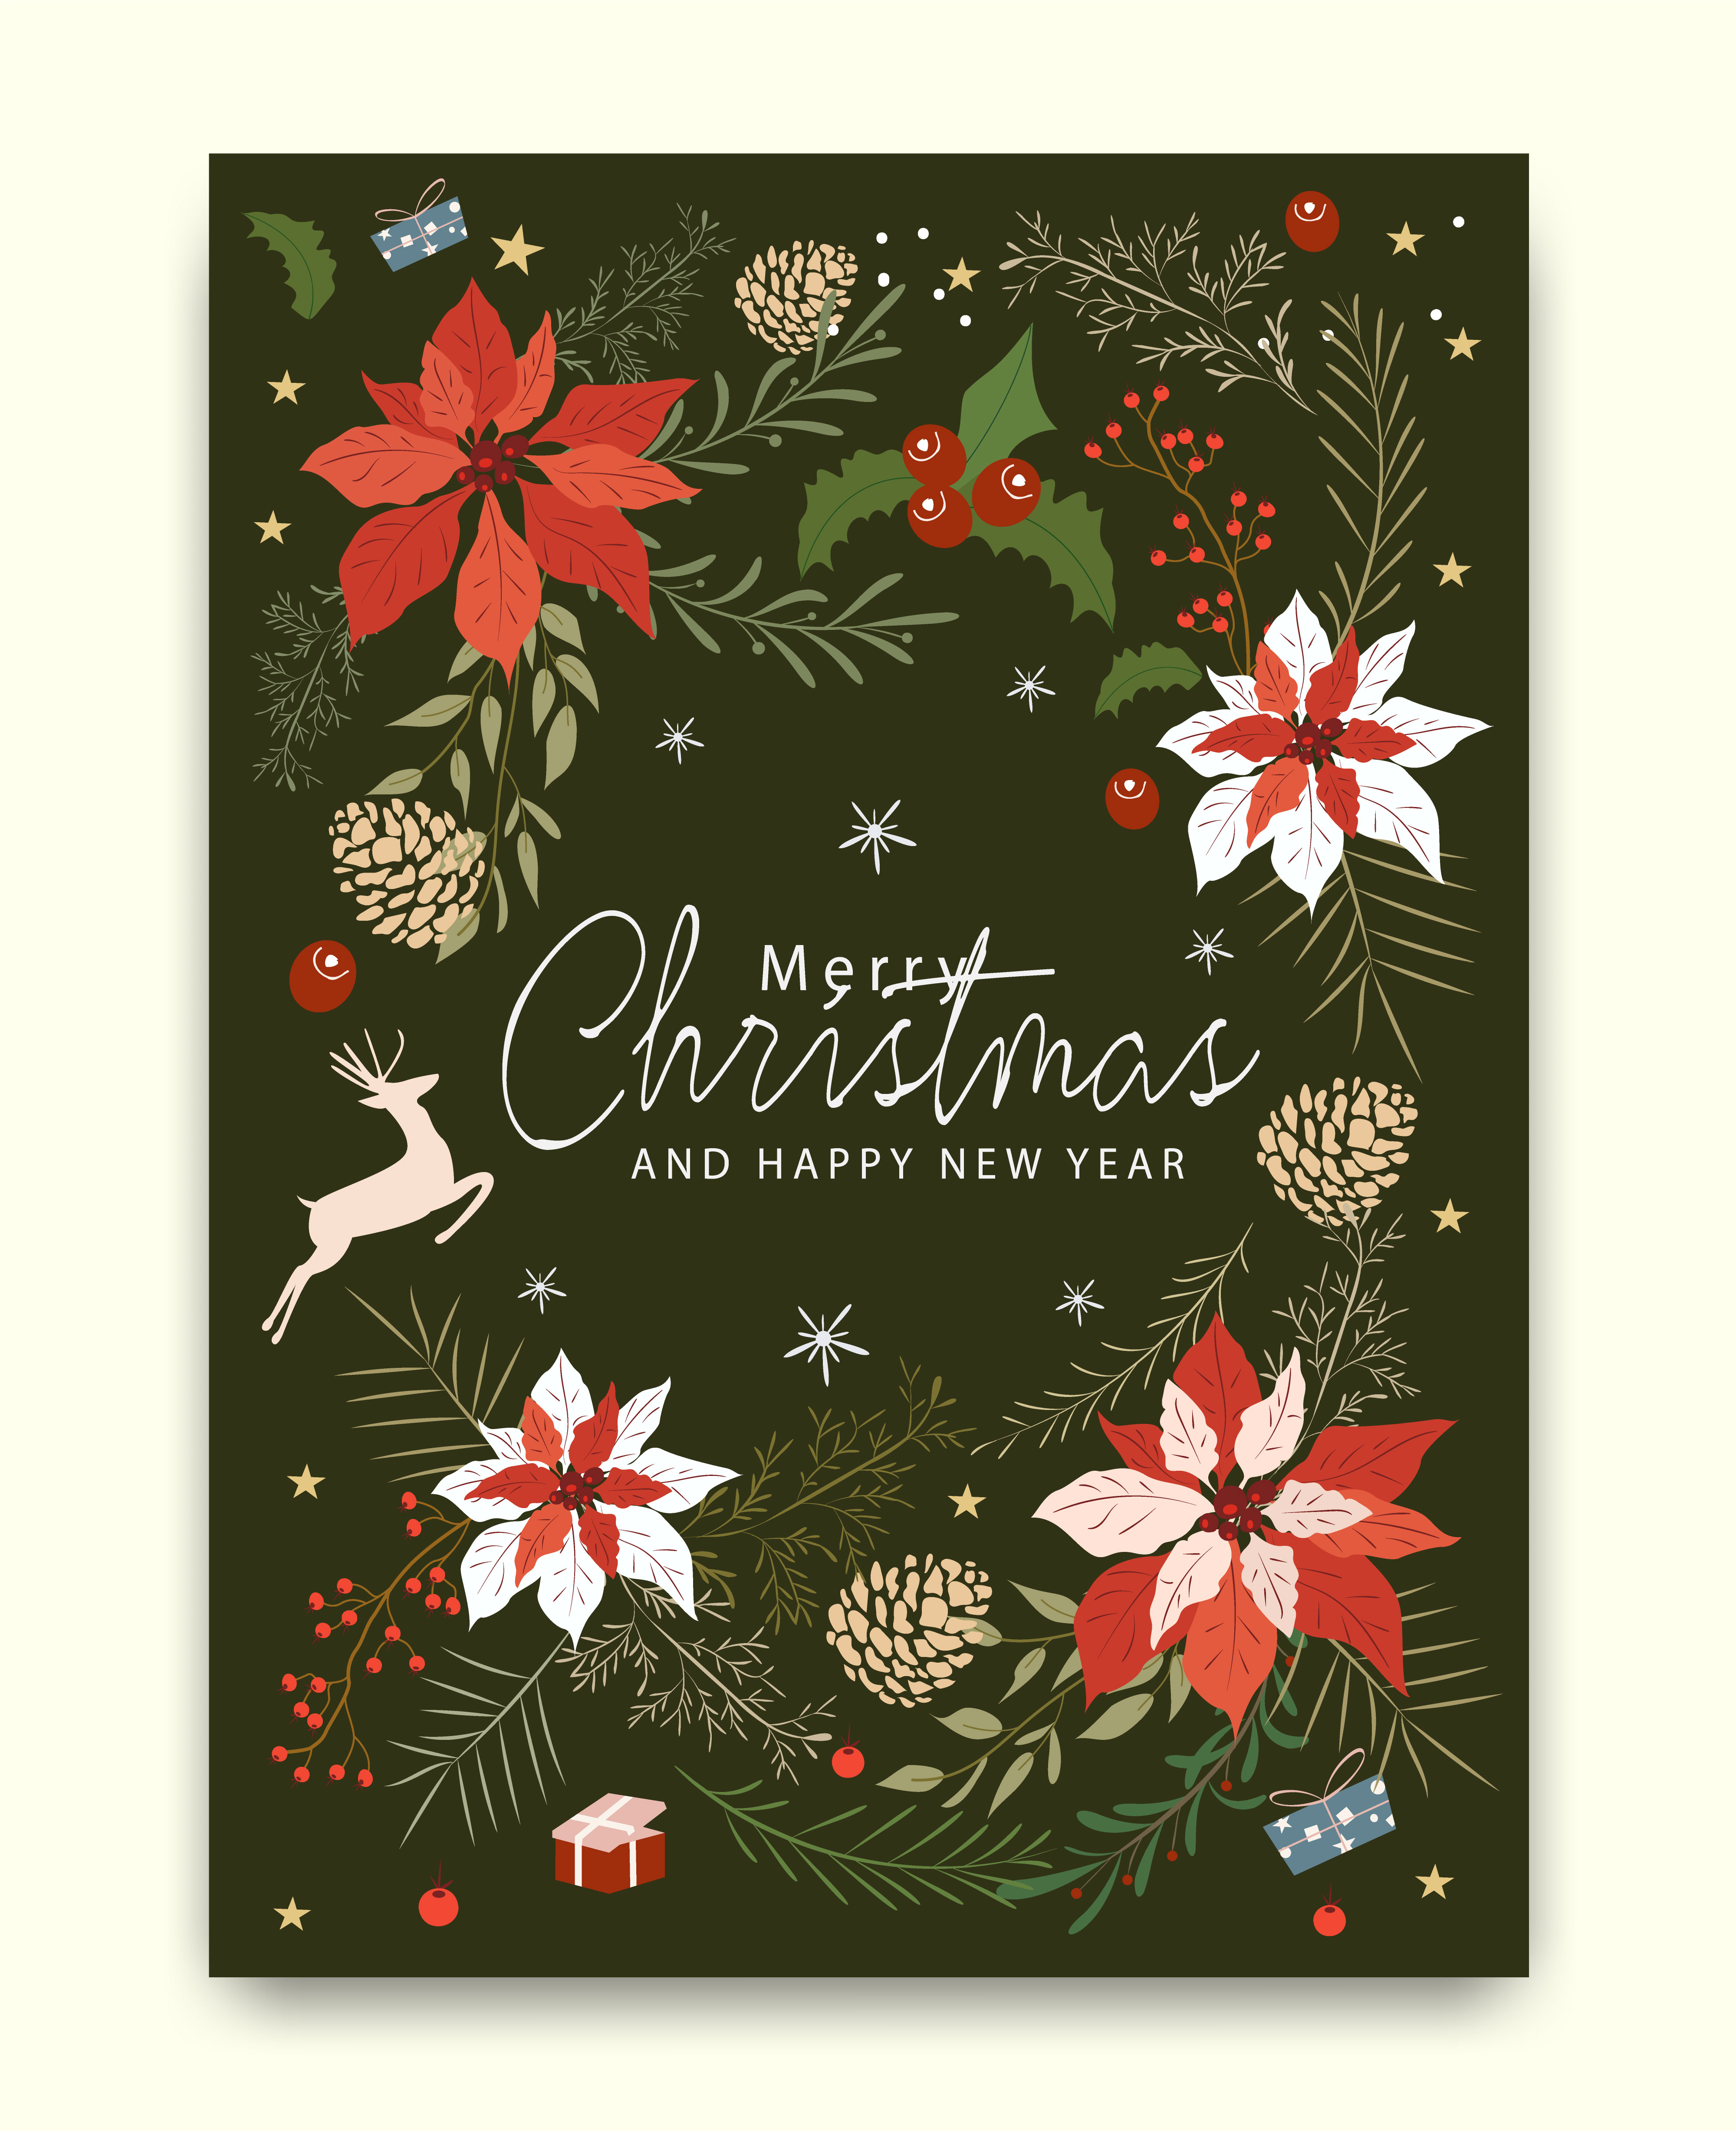 Merry Christmas greeting card pattern